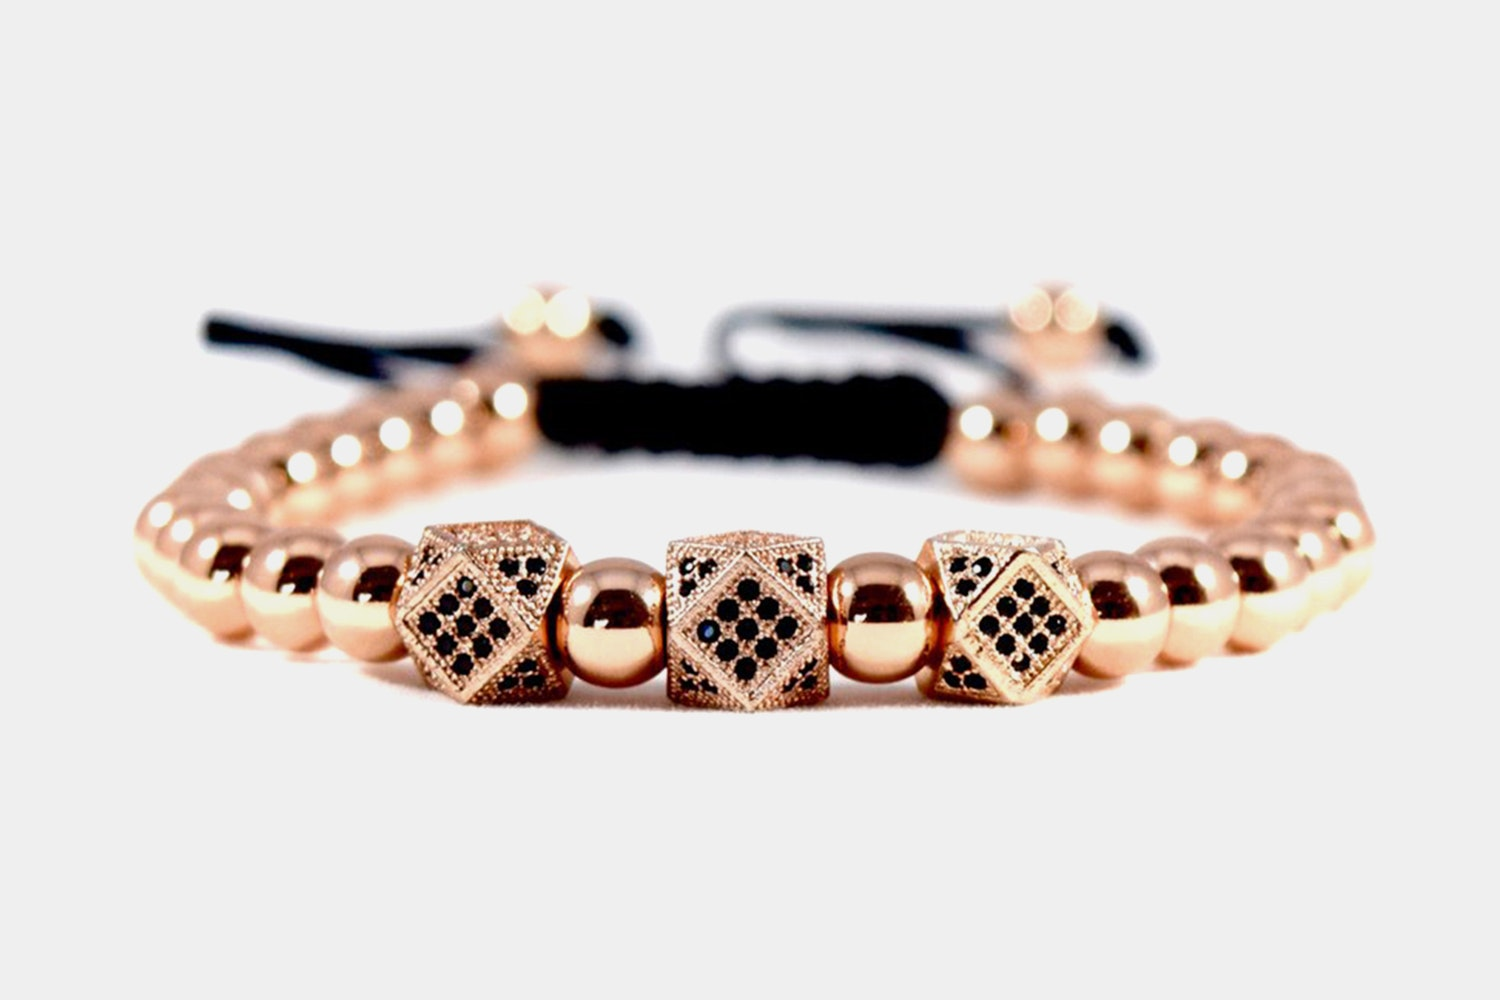 Premium Macrame Rope - Dominance // Rose Gold - Stainless Steel & Rope (+ $16)